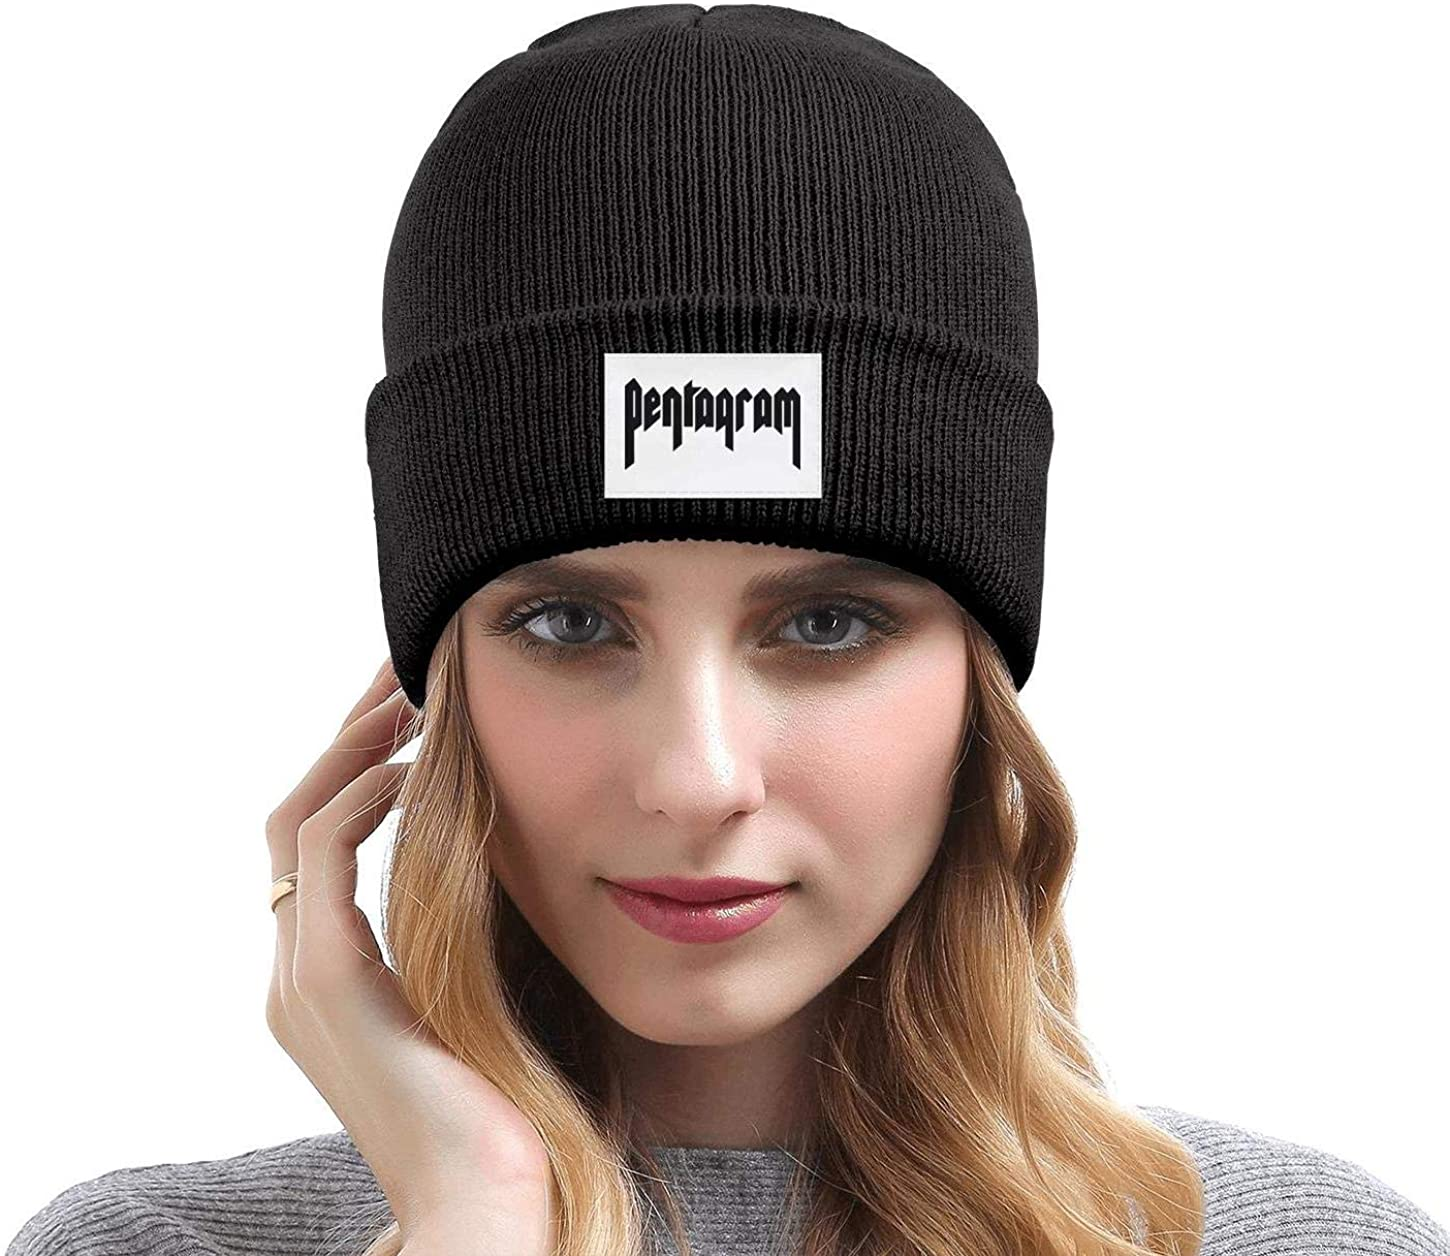 YJRTISF Popular Music Soft Slouchy Ski Knit Caps Personalized Trending Knitting Beanie Hats for Men